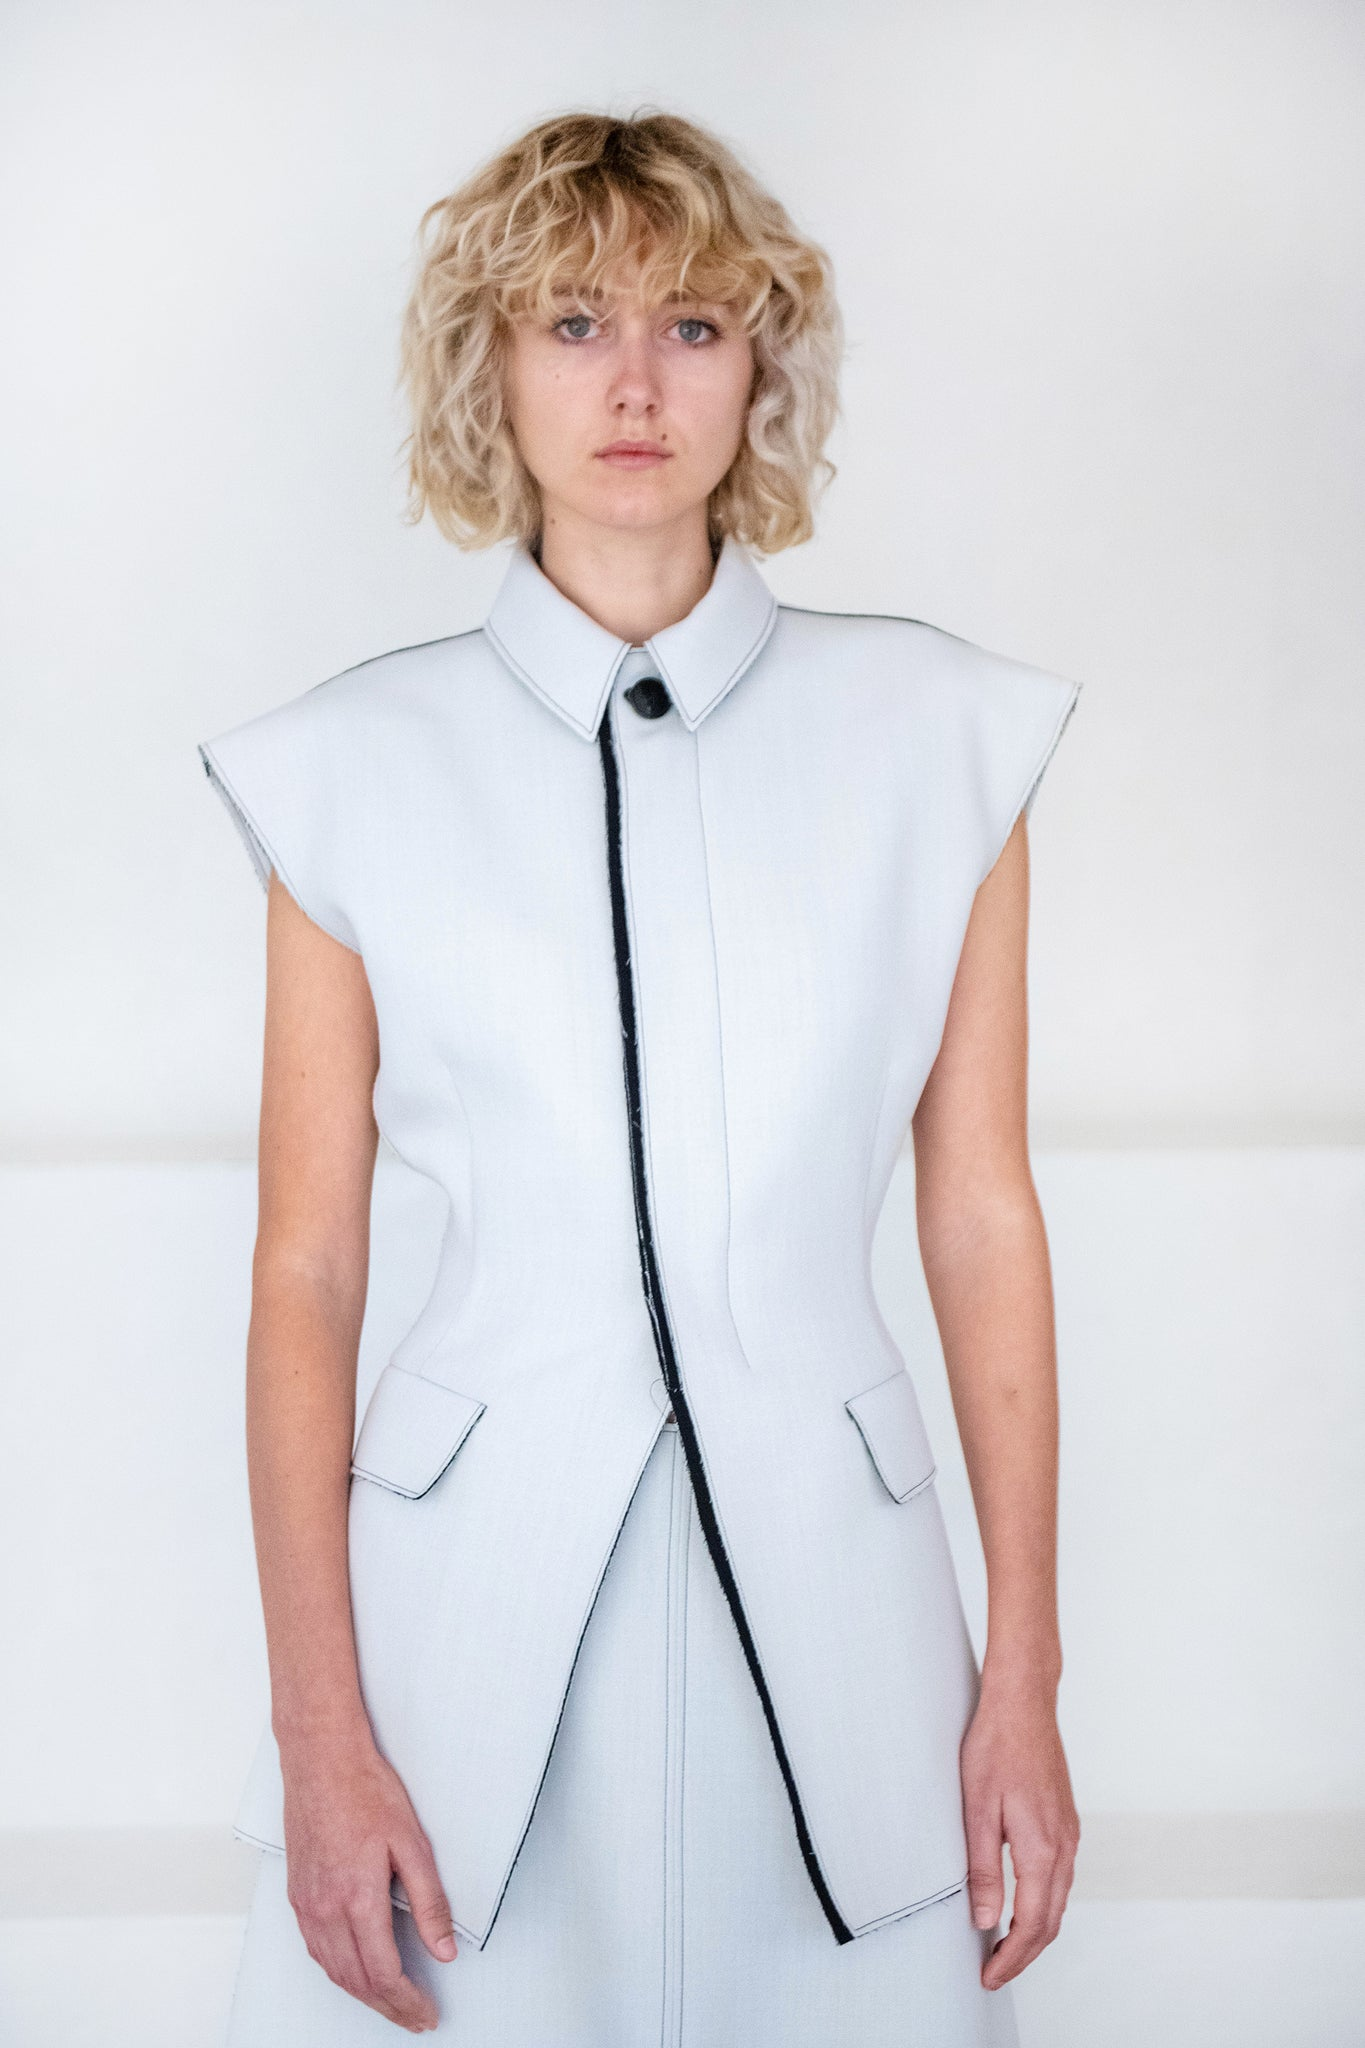 GAUCHERE - sati jacket, black and white